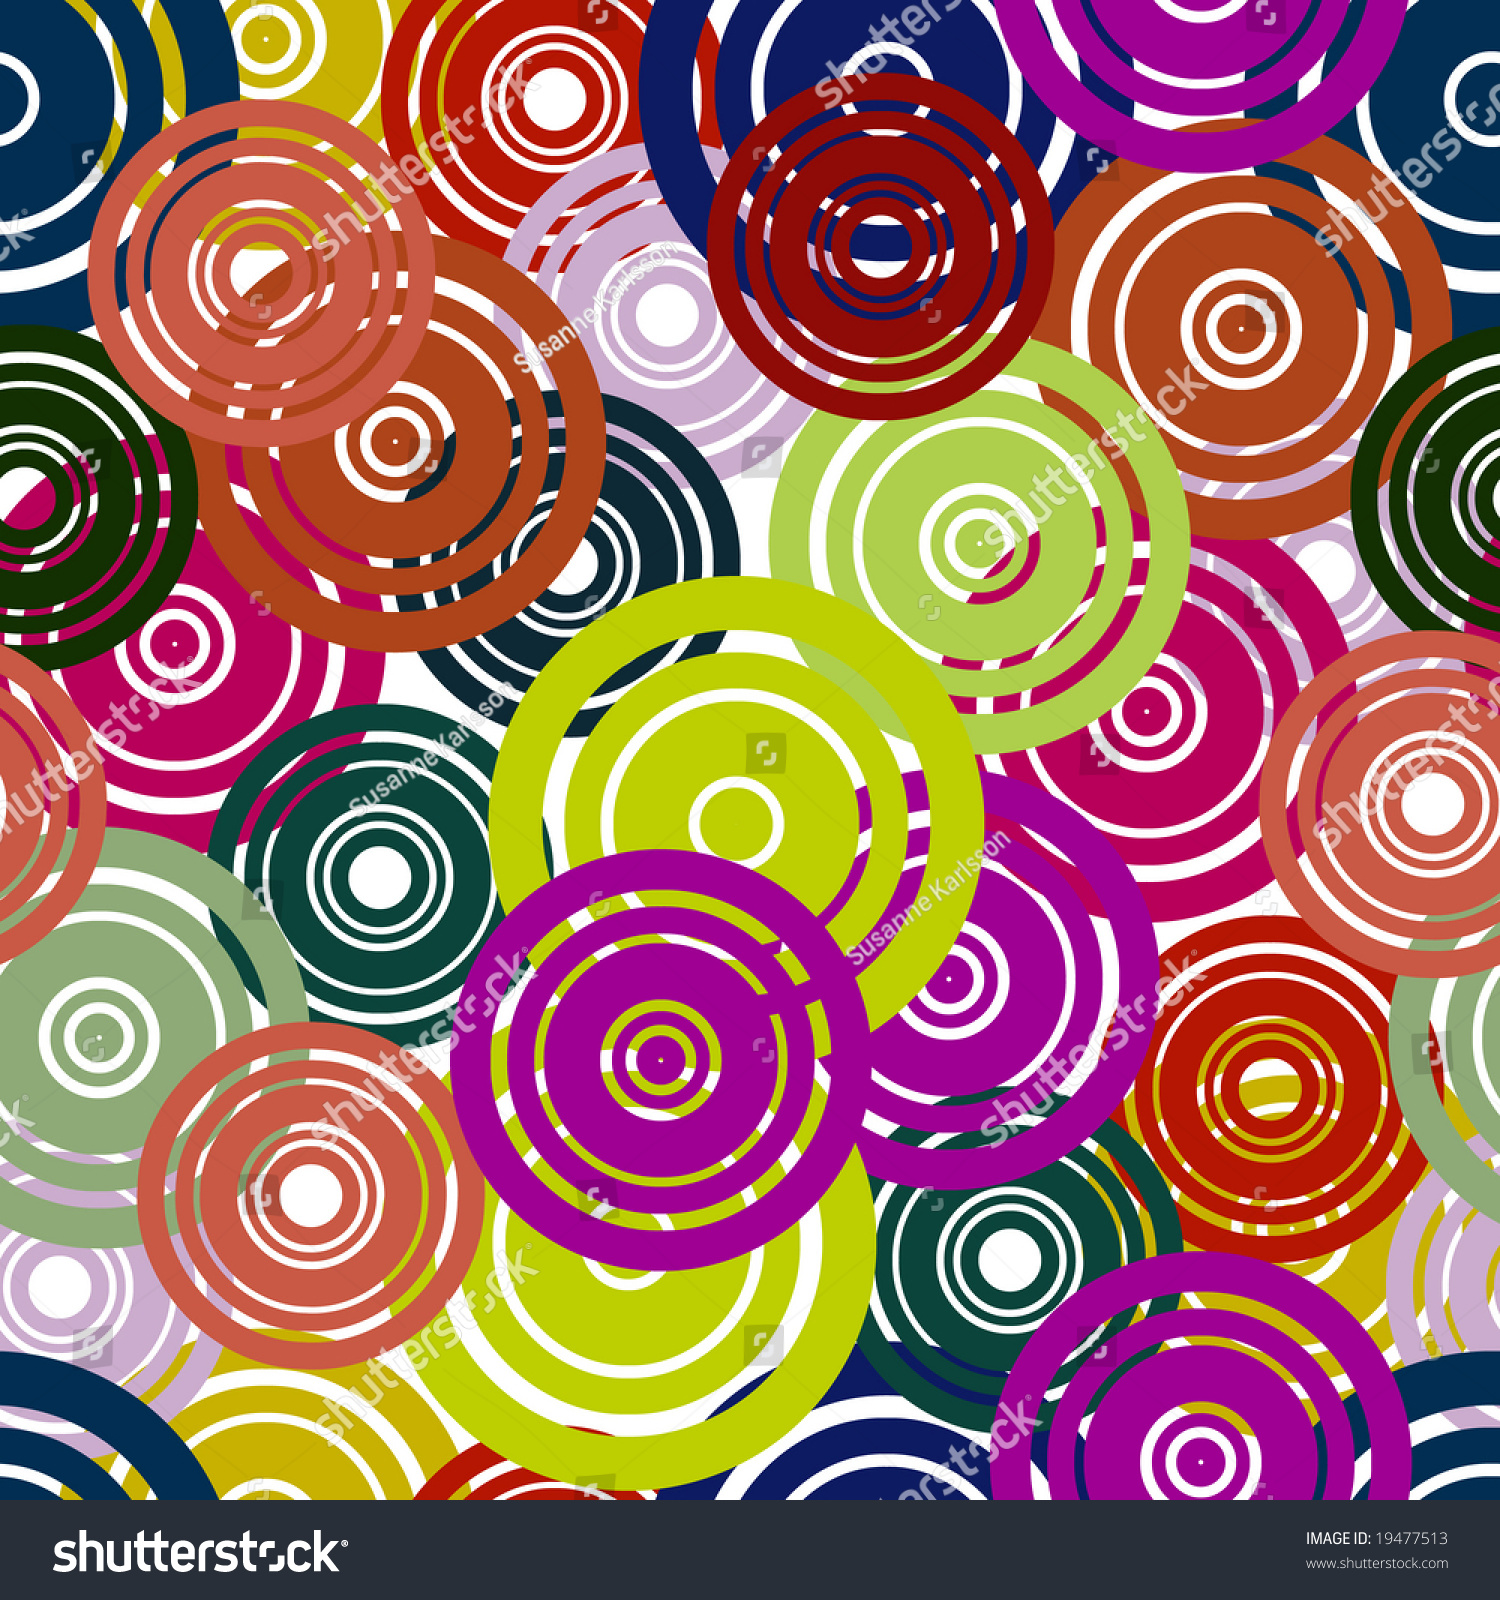 Retro Flower Pattern In Fashion Trend Colors Stock Photo ...